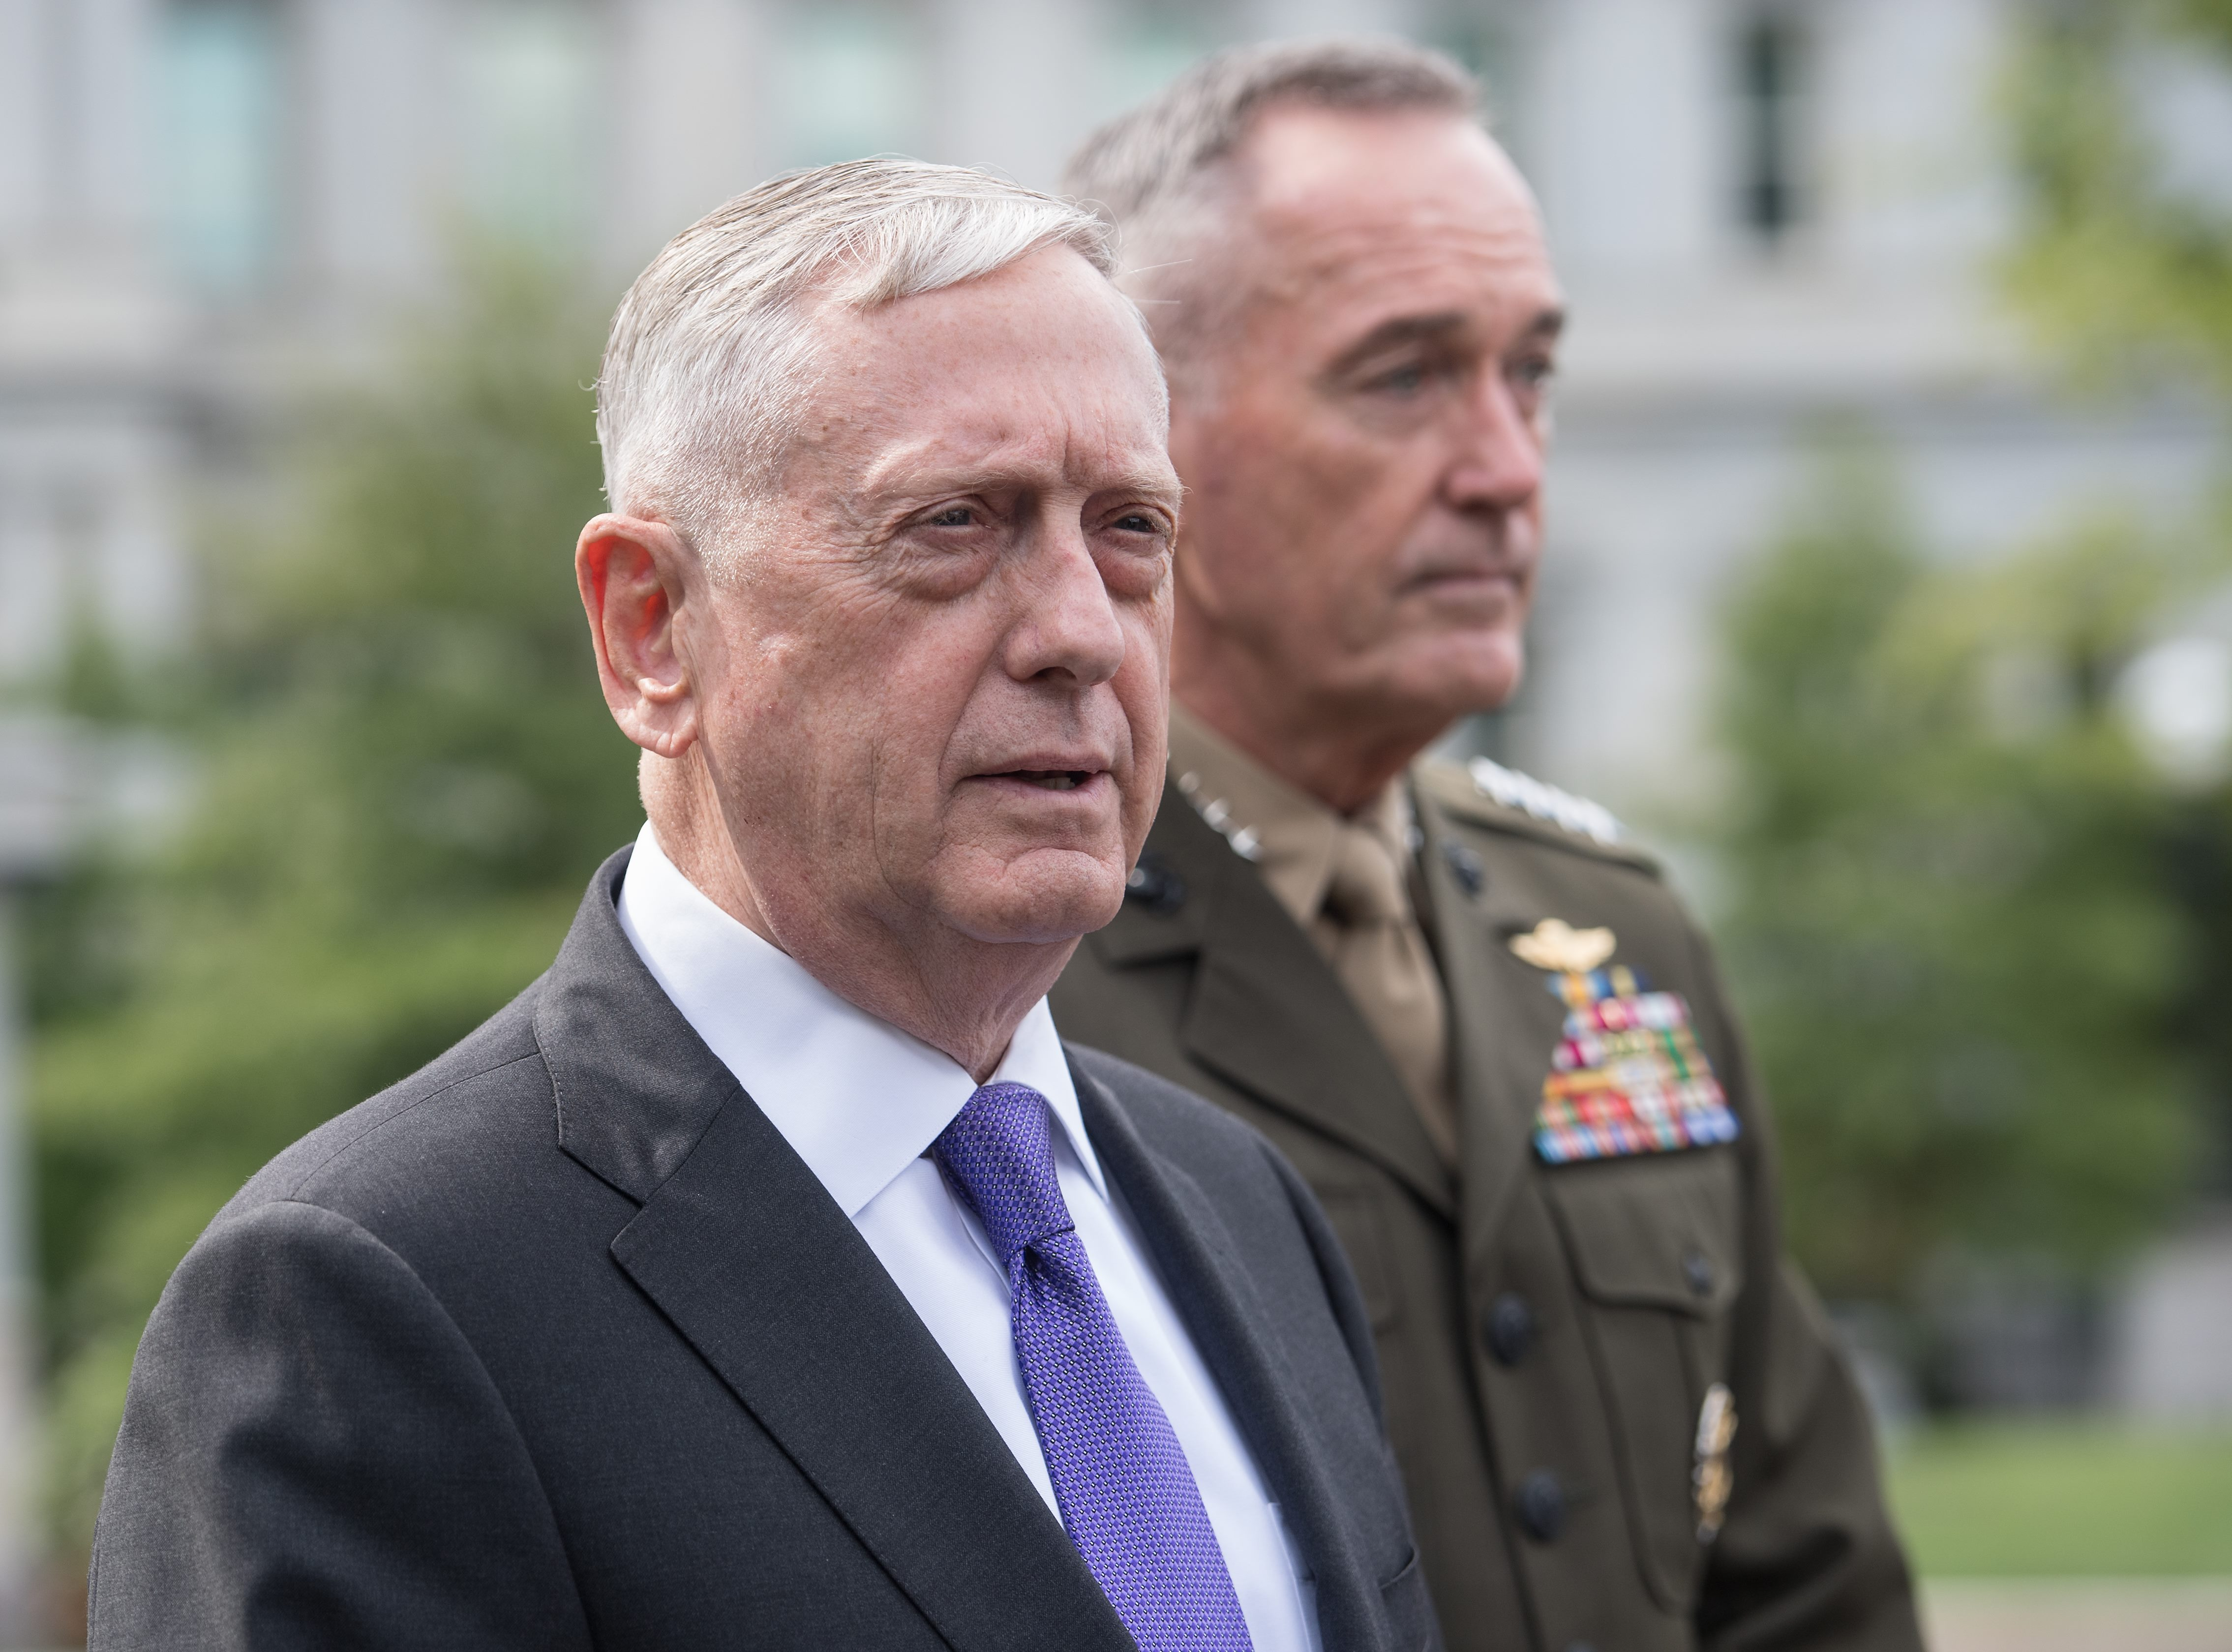 Defense Secretary James Mattis (L) and Gen. Joseph Dunford, chairman of the Joint Chiefs of Staff, arrive to speak to the press about the situation in North Korea at the White House in Washington on Sept. 3, 2017. (NICHOLAS KAMM/AFP/Getty Images)